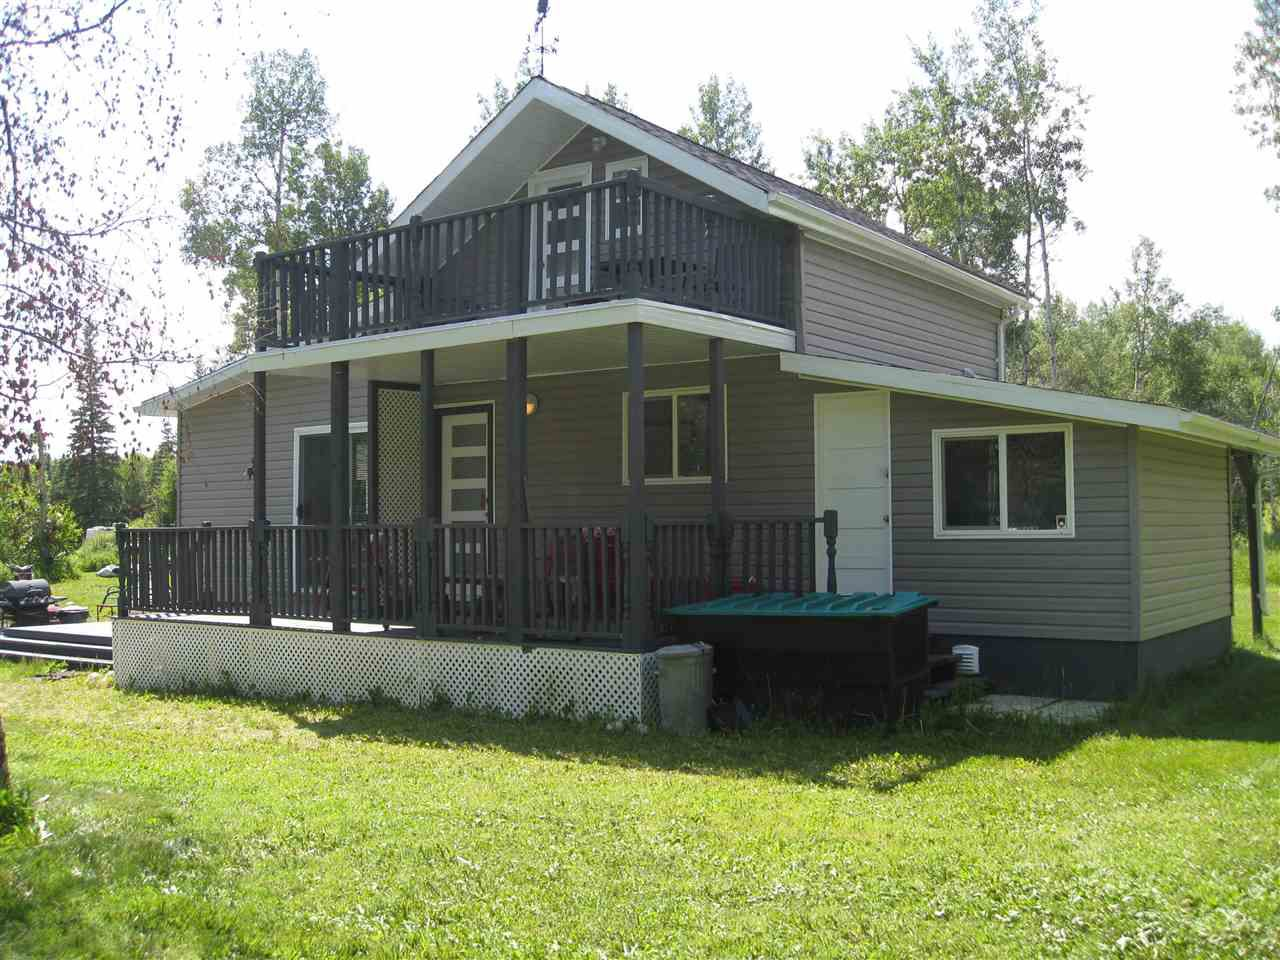 Main Photo: 3, 53513 Rge Rd 35: Rural Lac Ste. Anne County House for sale : MLS®# E4163540